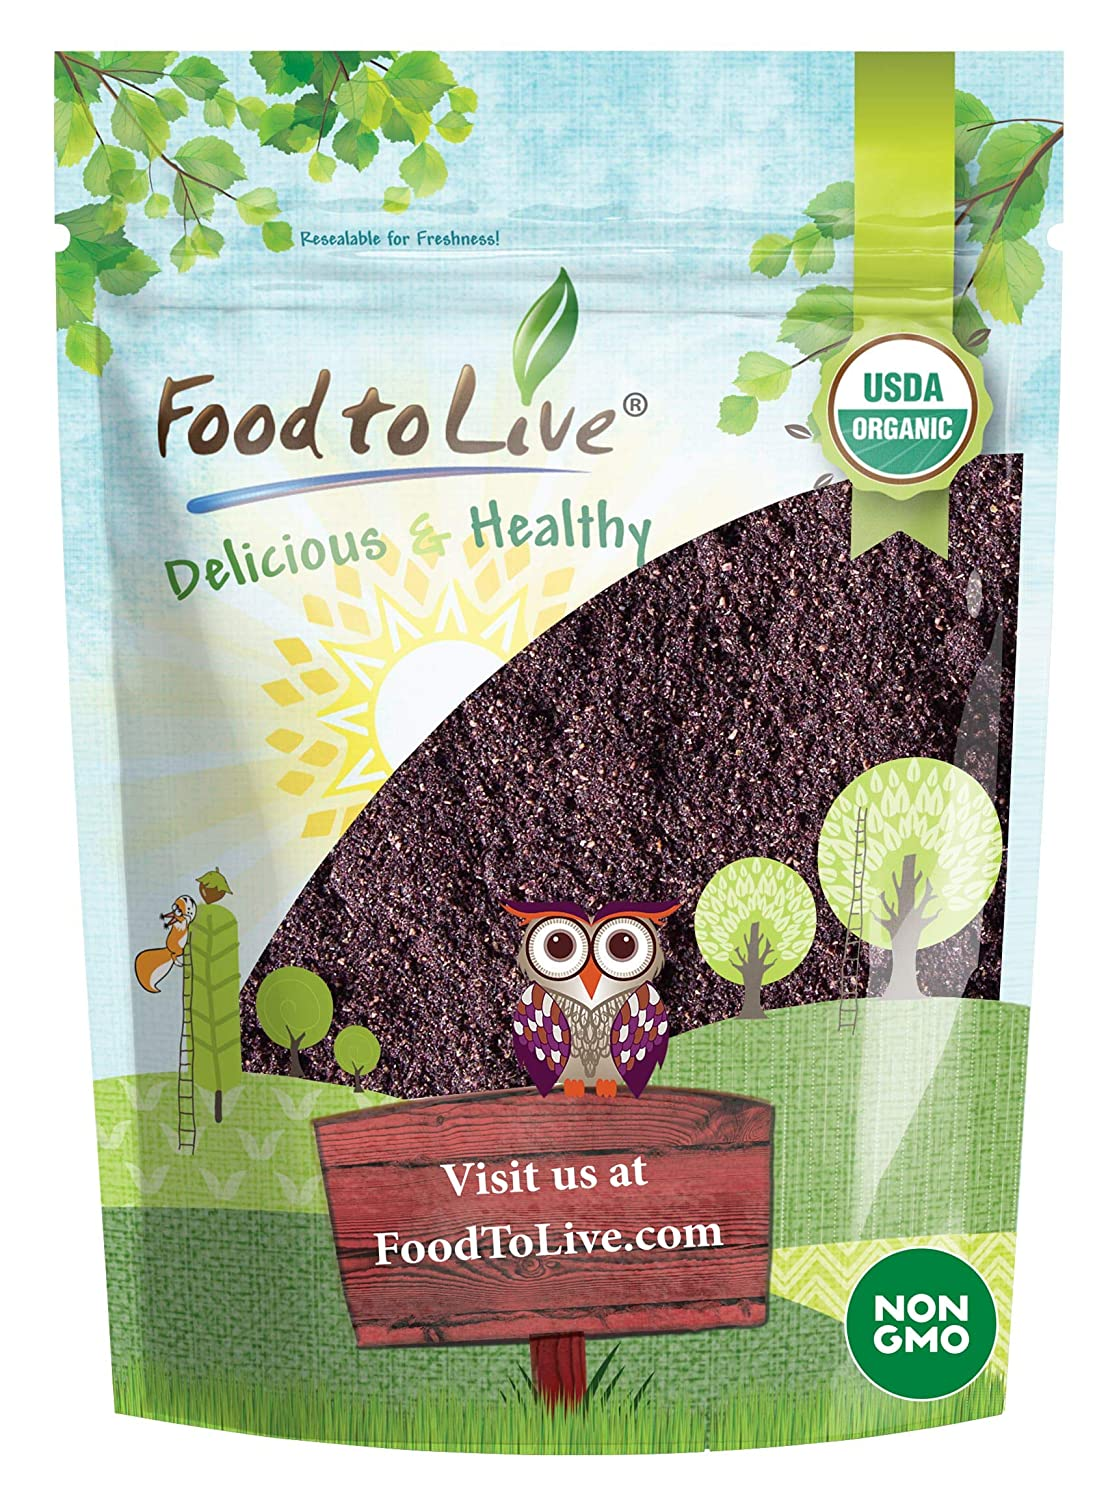 Organic Maqui Berry Powder, 1 Pound — Non-GMO, Raw, 100% Pure, Vegan Superfood, No Added Sugar, Bulk, Rich in Iron, Fiber and Antioxidant, Great for Juices, Drinks, and Smoothies.